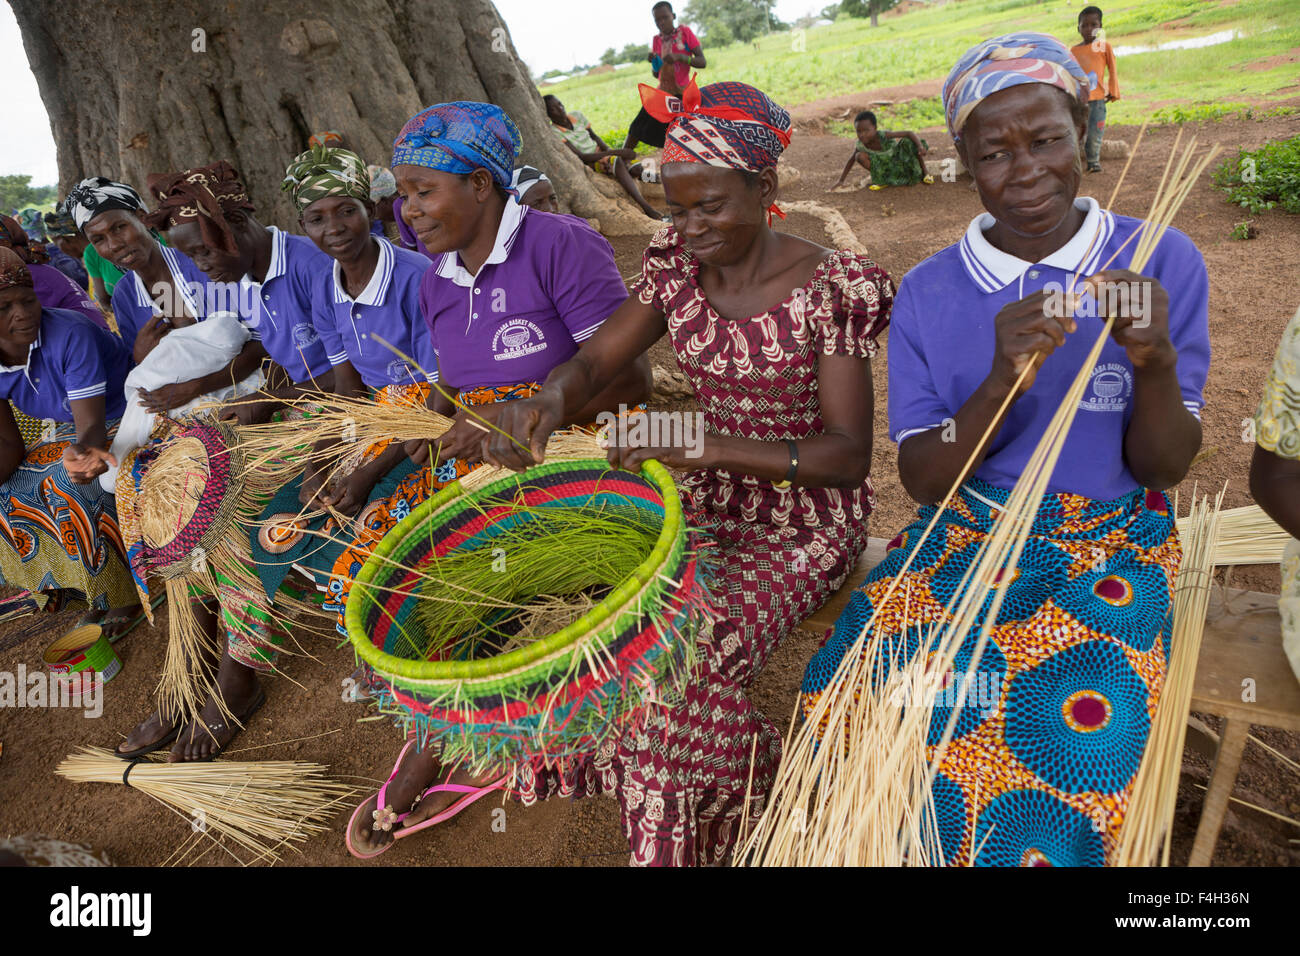 Basket Weaving Groups : Fair trade ornate straw baskets are woven by the women of